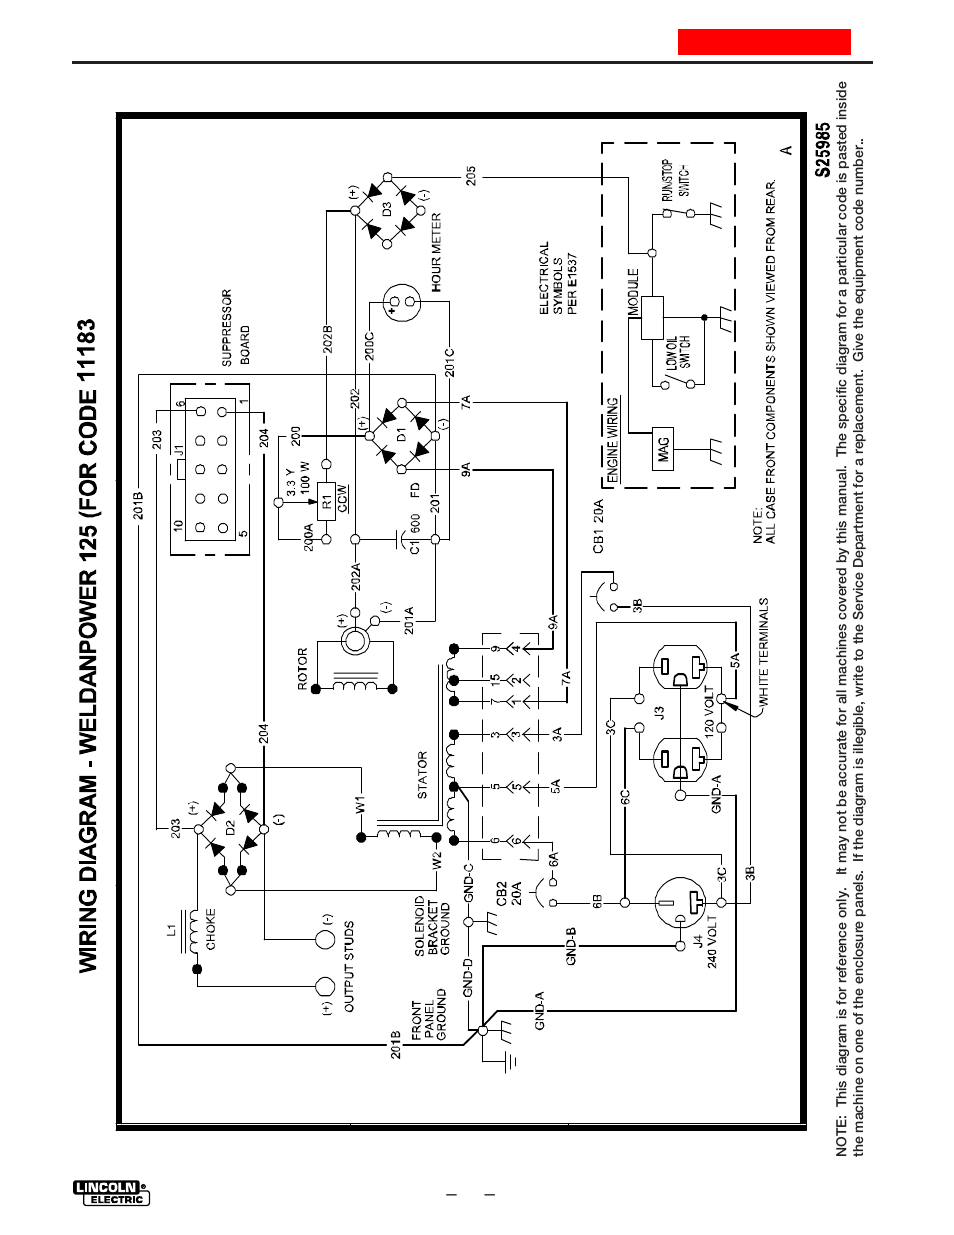 Wiring diagram | Lincoln Electric WELDANPOWER 125 IM530-C User Manual |  Page 33 /